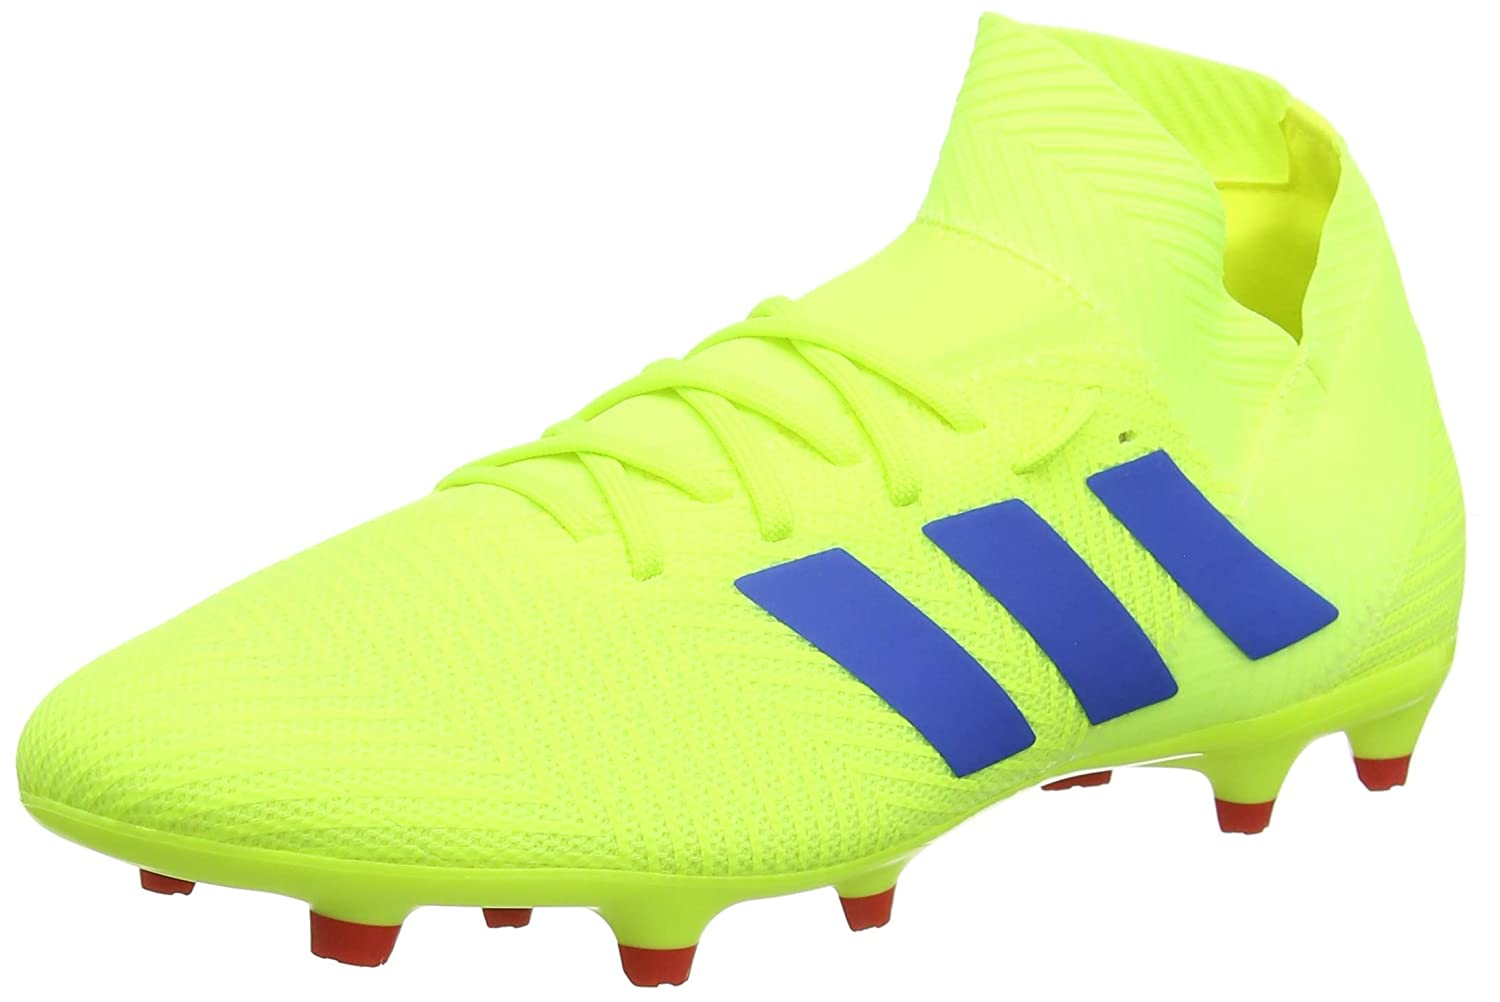 Jaune (Solar jaune Football bleu Active rouge Solar jaune Football bleu Active rouge) adidas Nemeziz 18.3 FG, Chaussures de Football Homme 45 EU